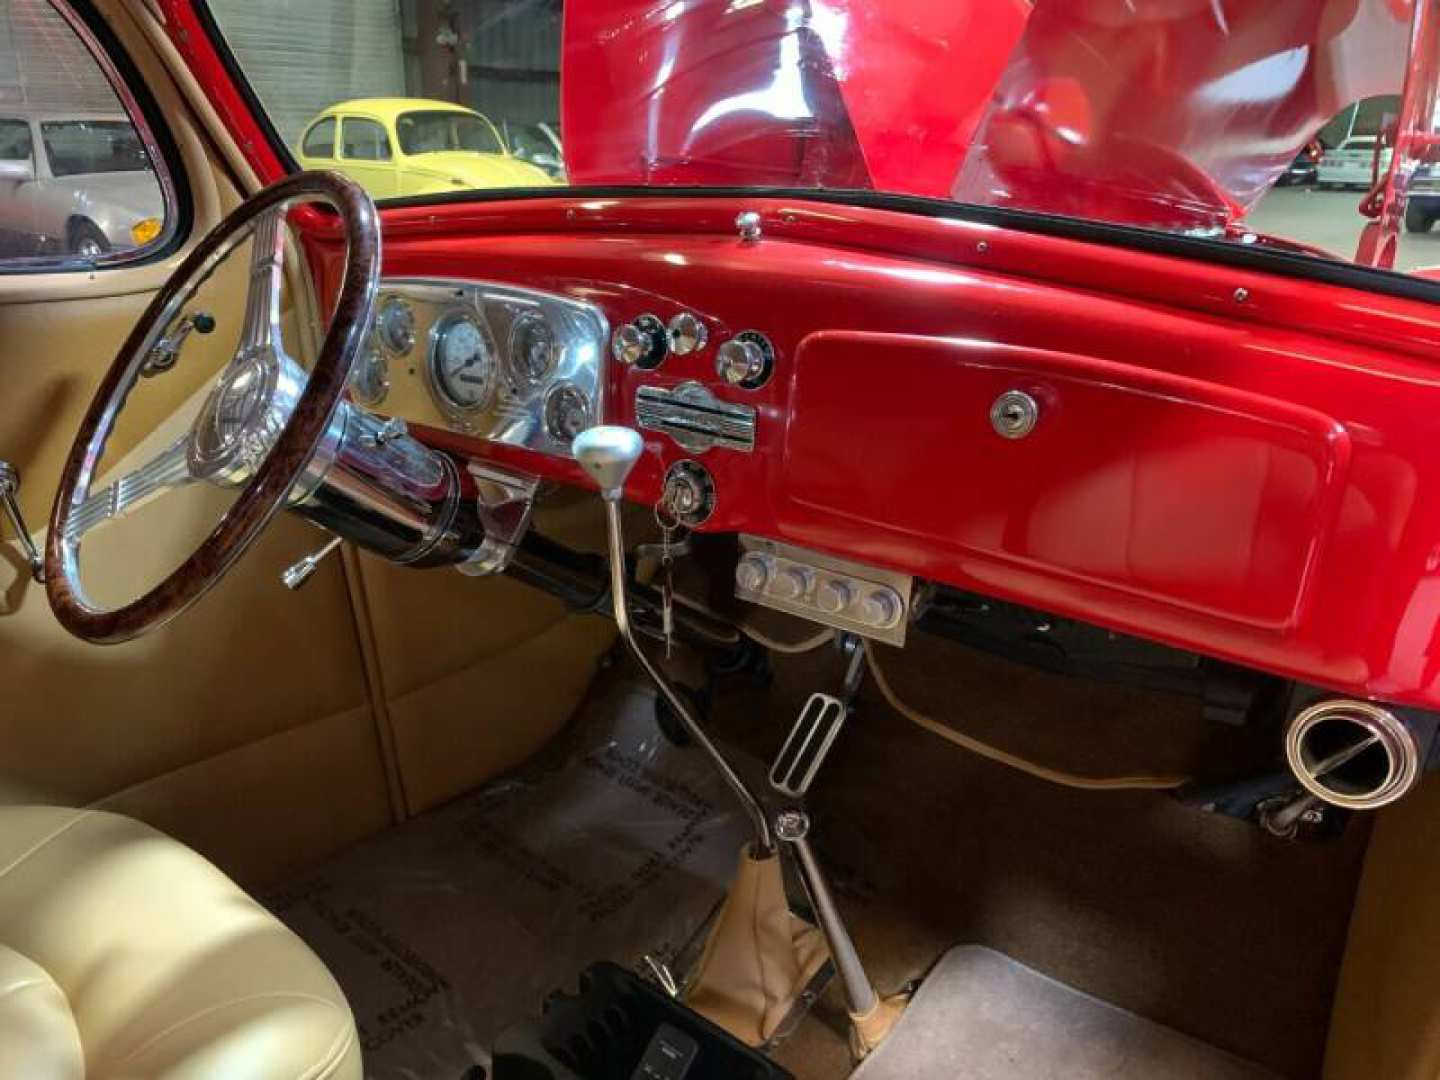 71st Image of a 1936 CHEVROLET COUPE